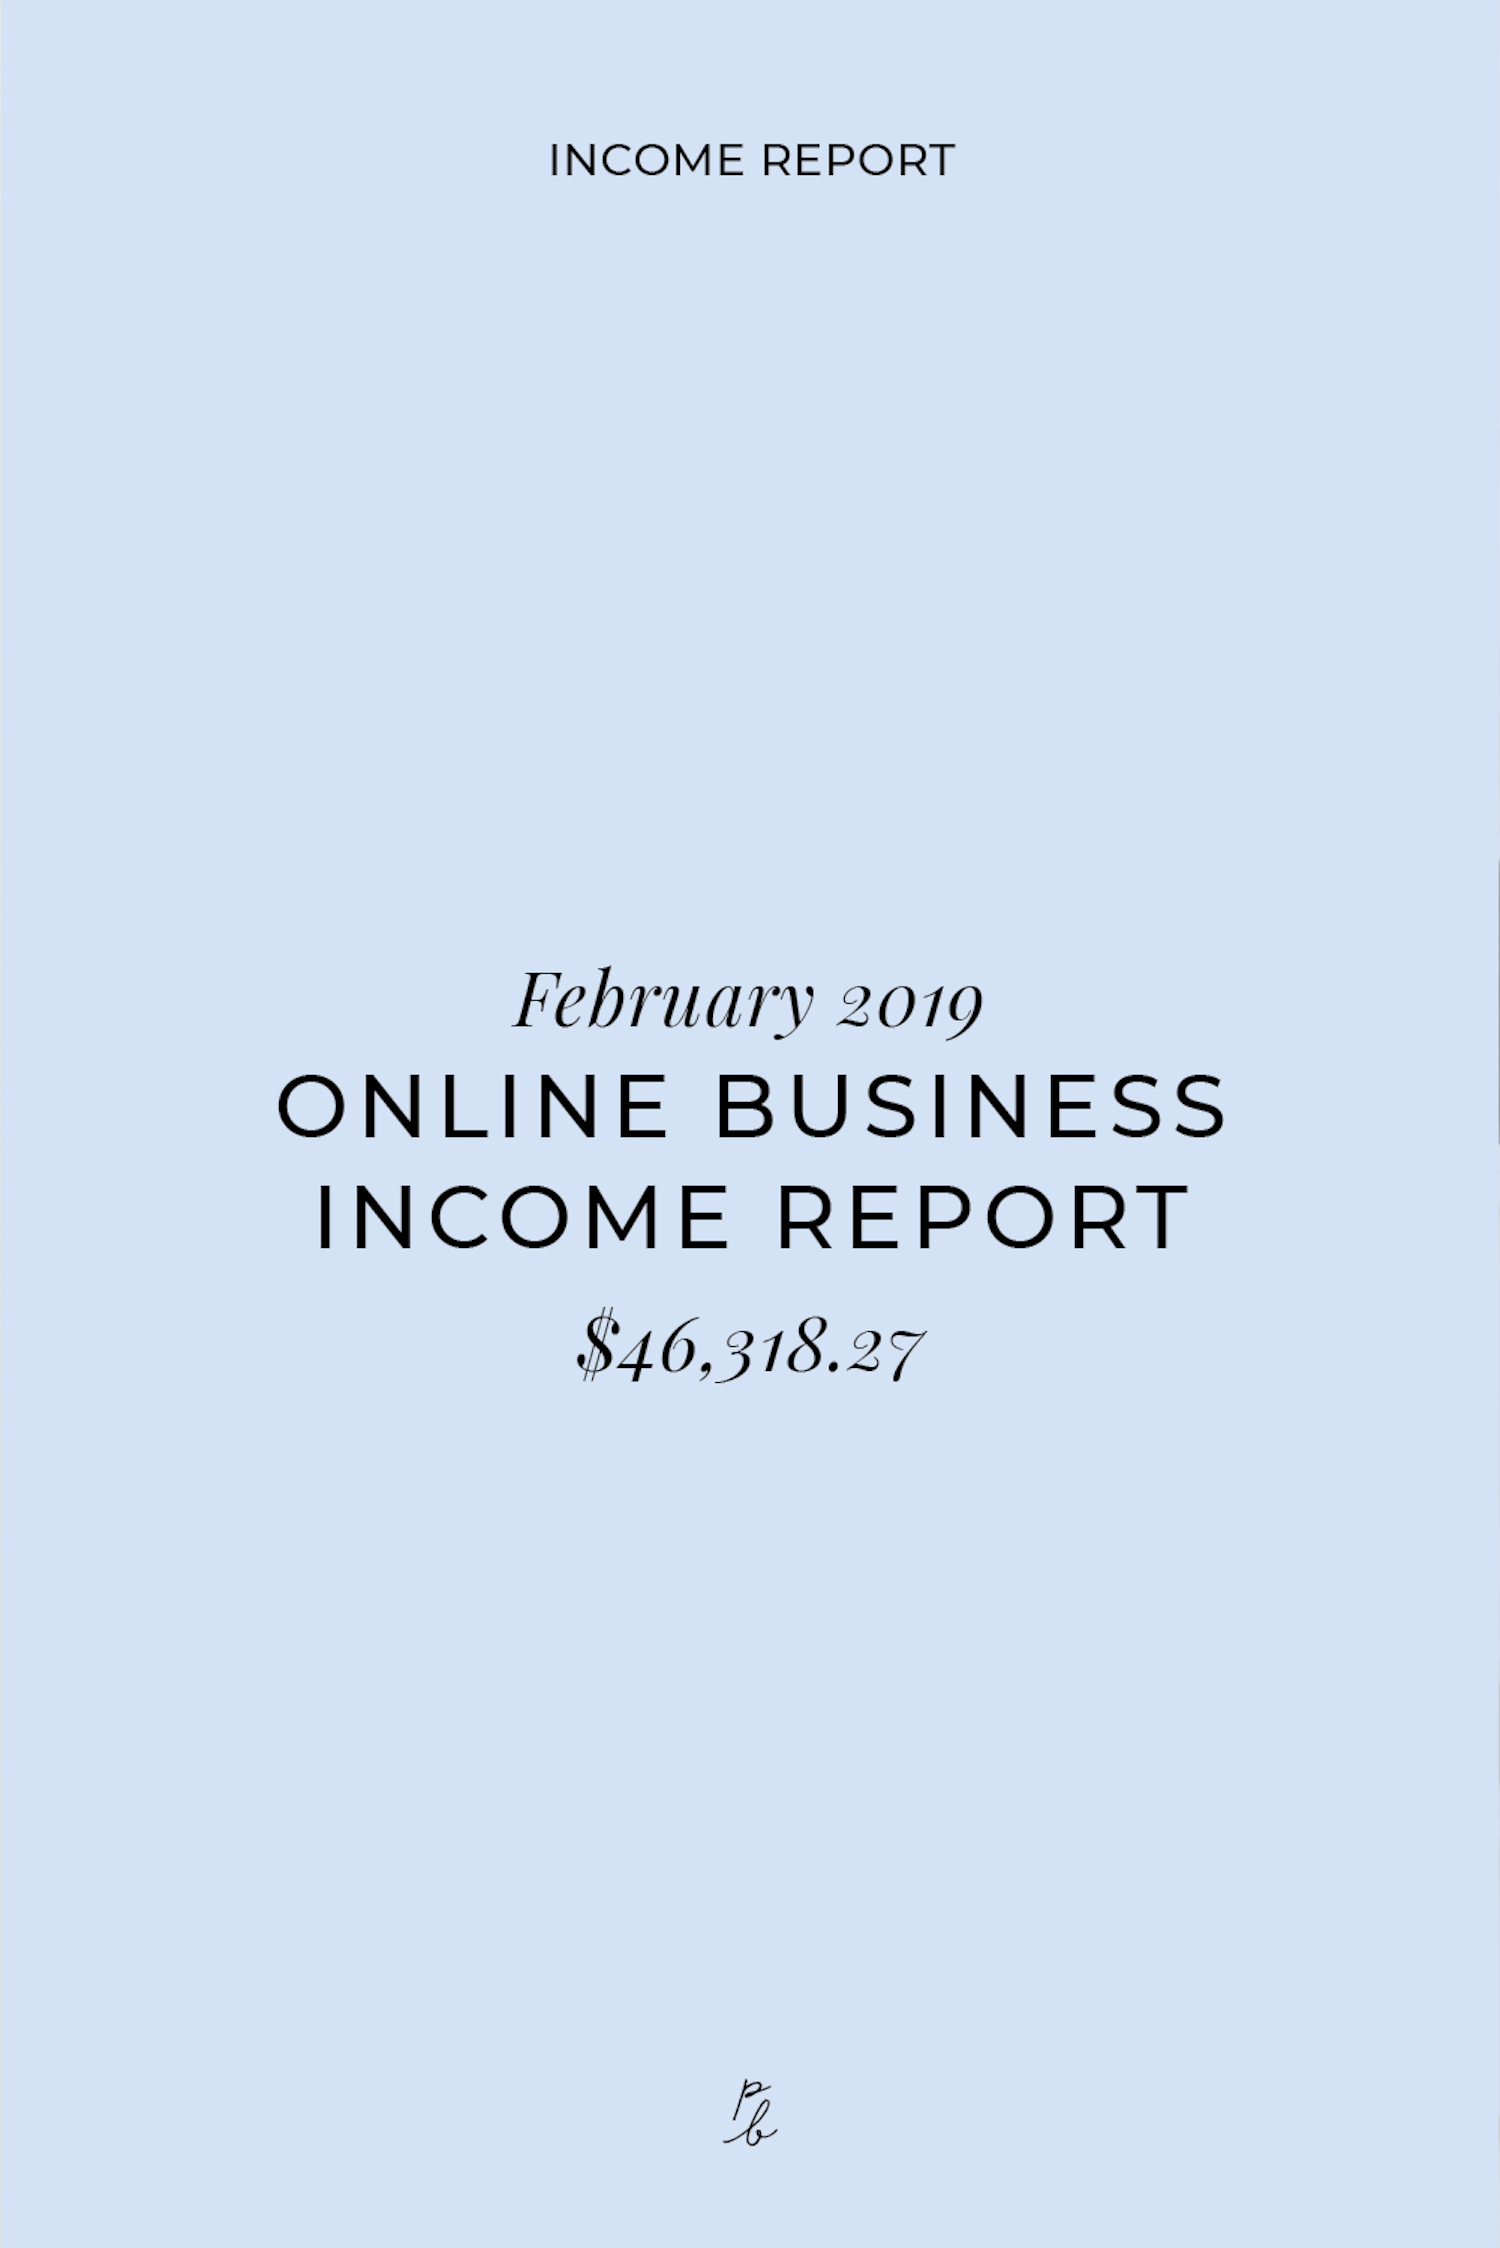 February 2019 Online Business Income Report 2.jpeg